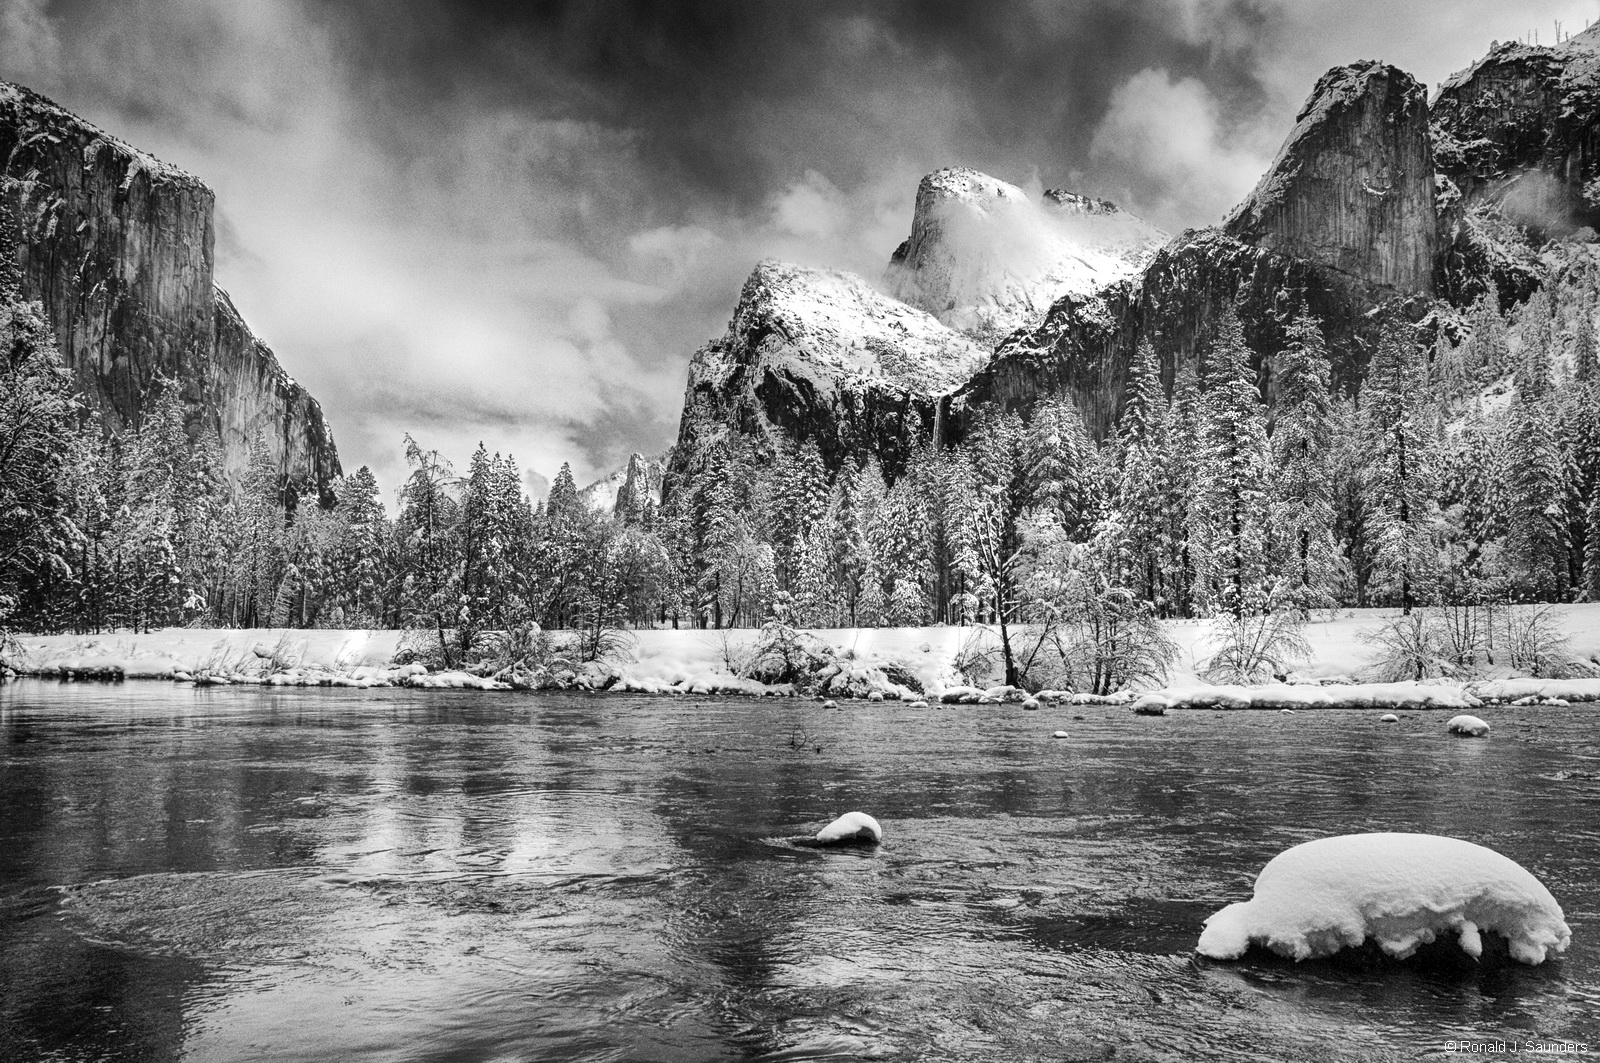 yosemite, black, white, ron, ronald, saunders, snow, winter,valley, view,landscape, fine art, keeble, shuchat,exhibition, photo